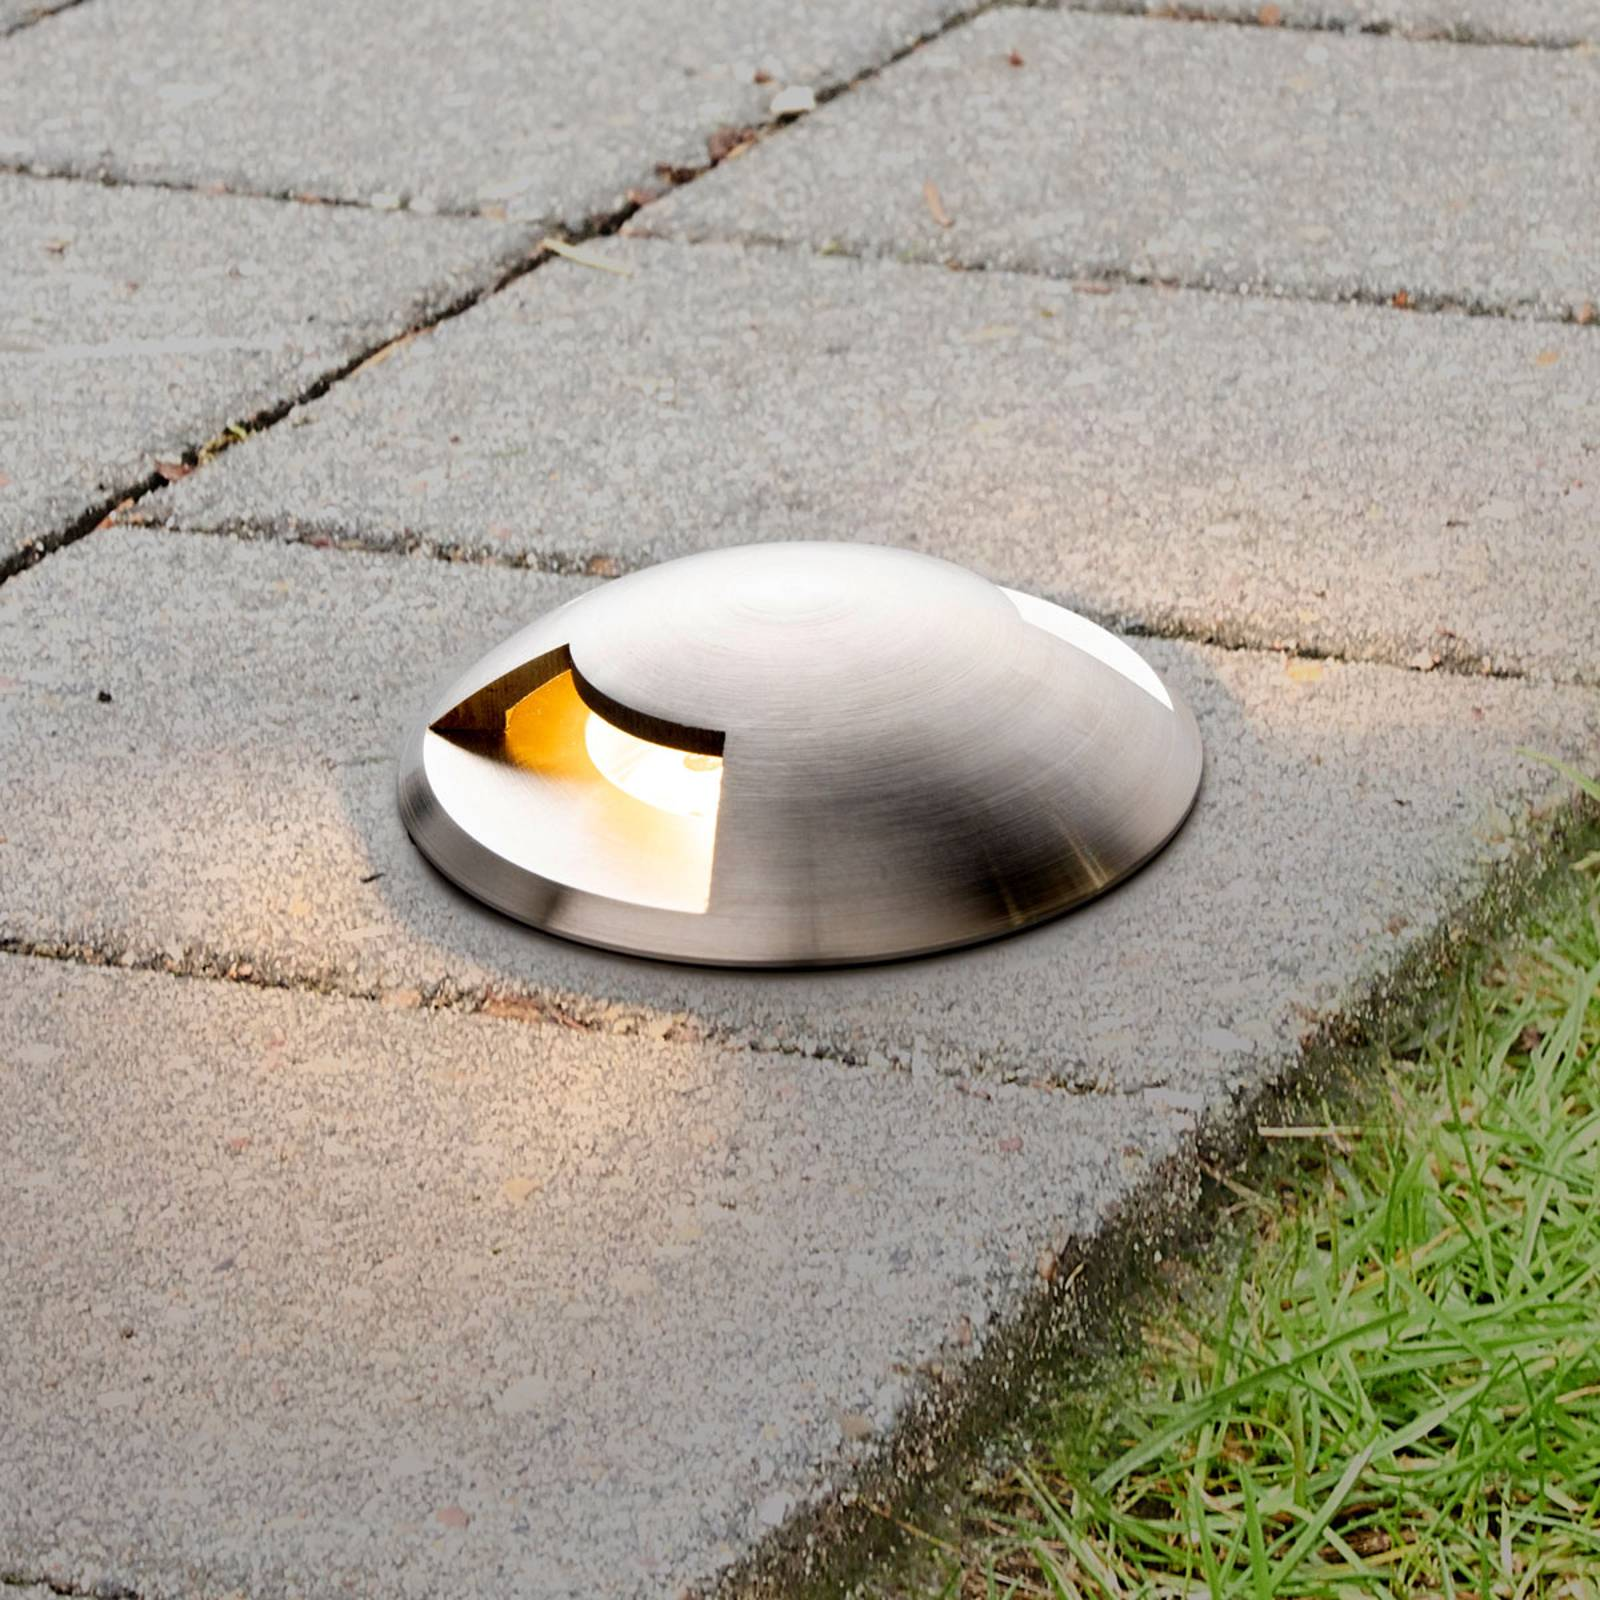 Helene recessed floor light for outdoors with LEDs from Lucande